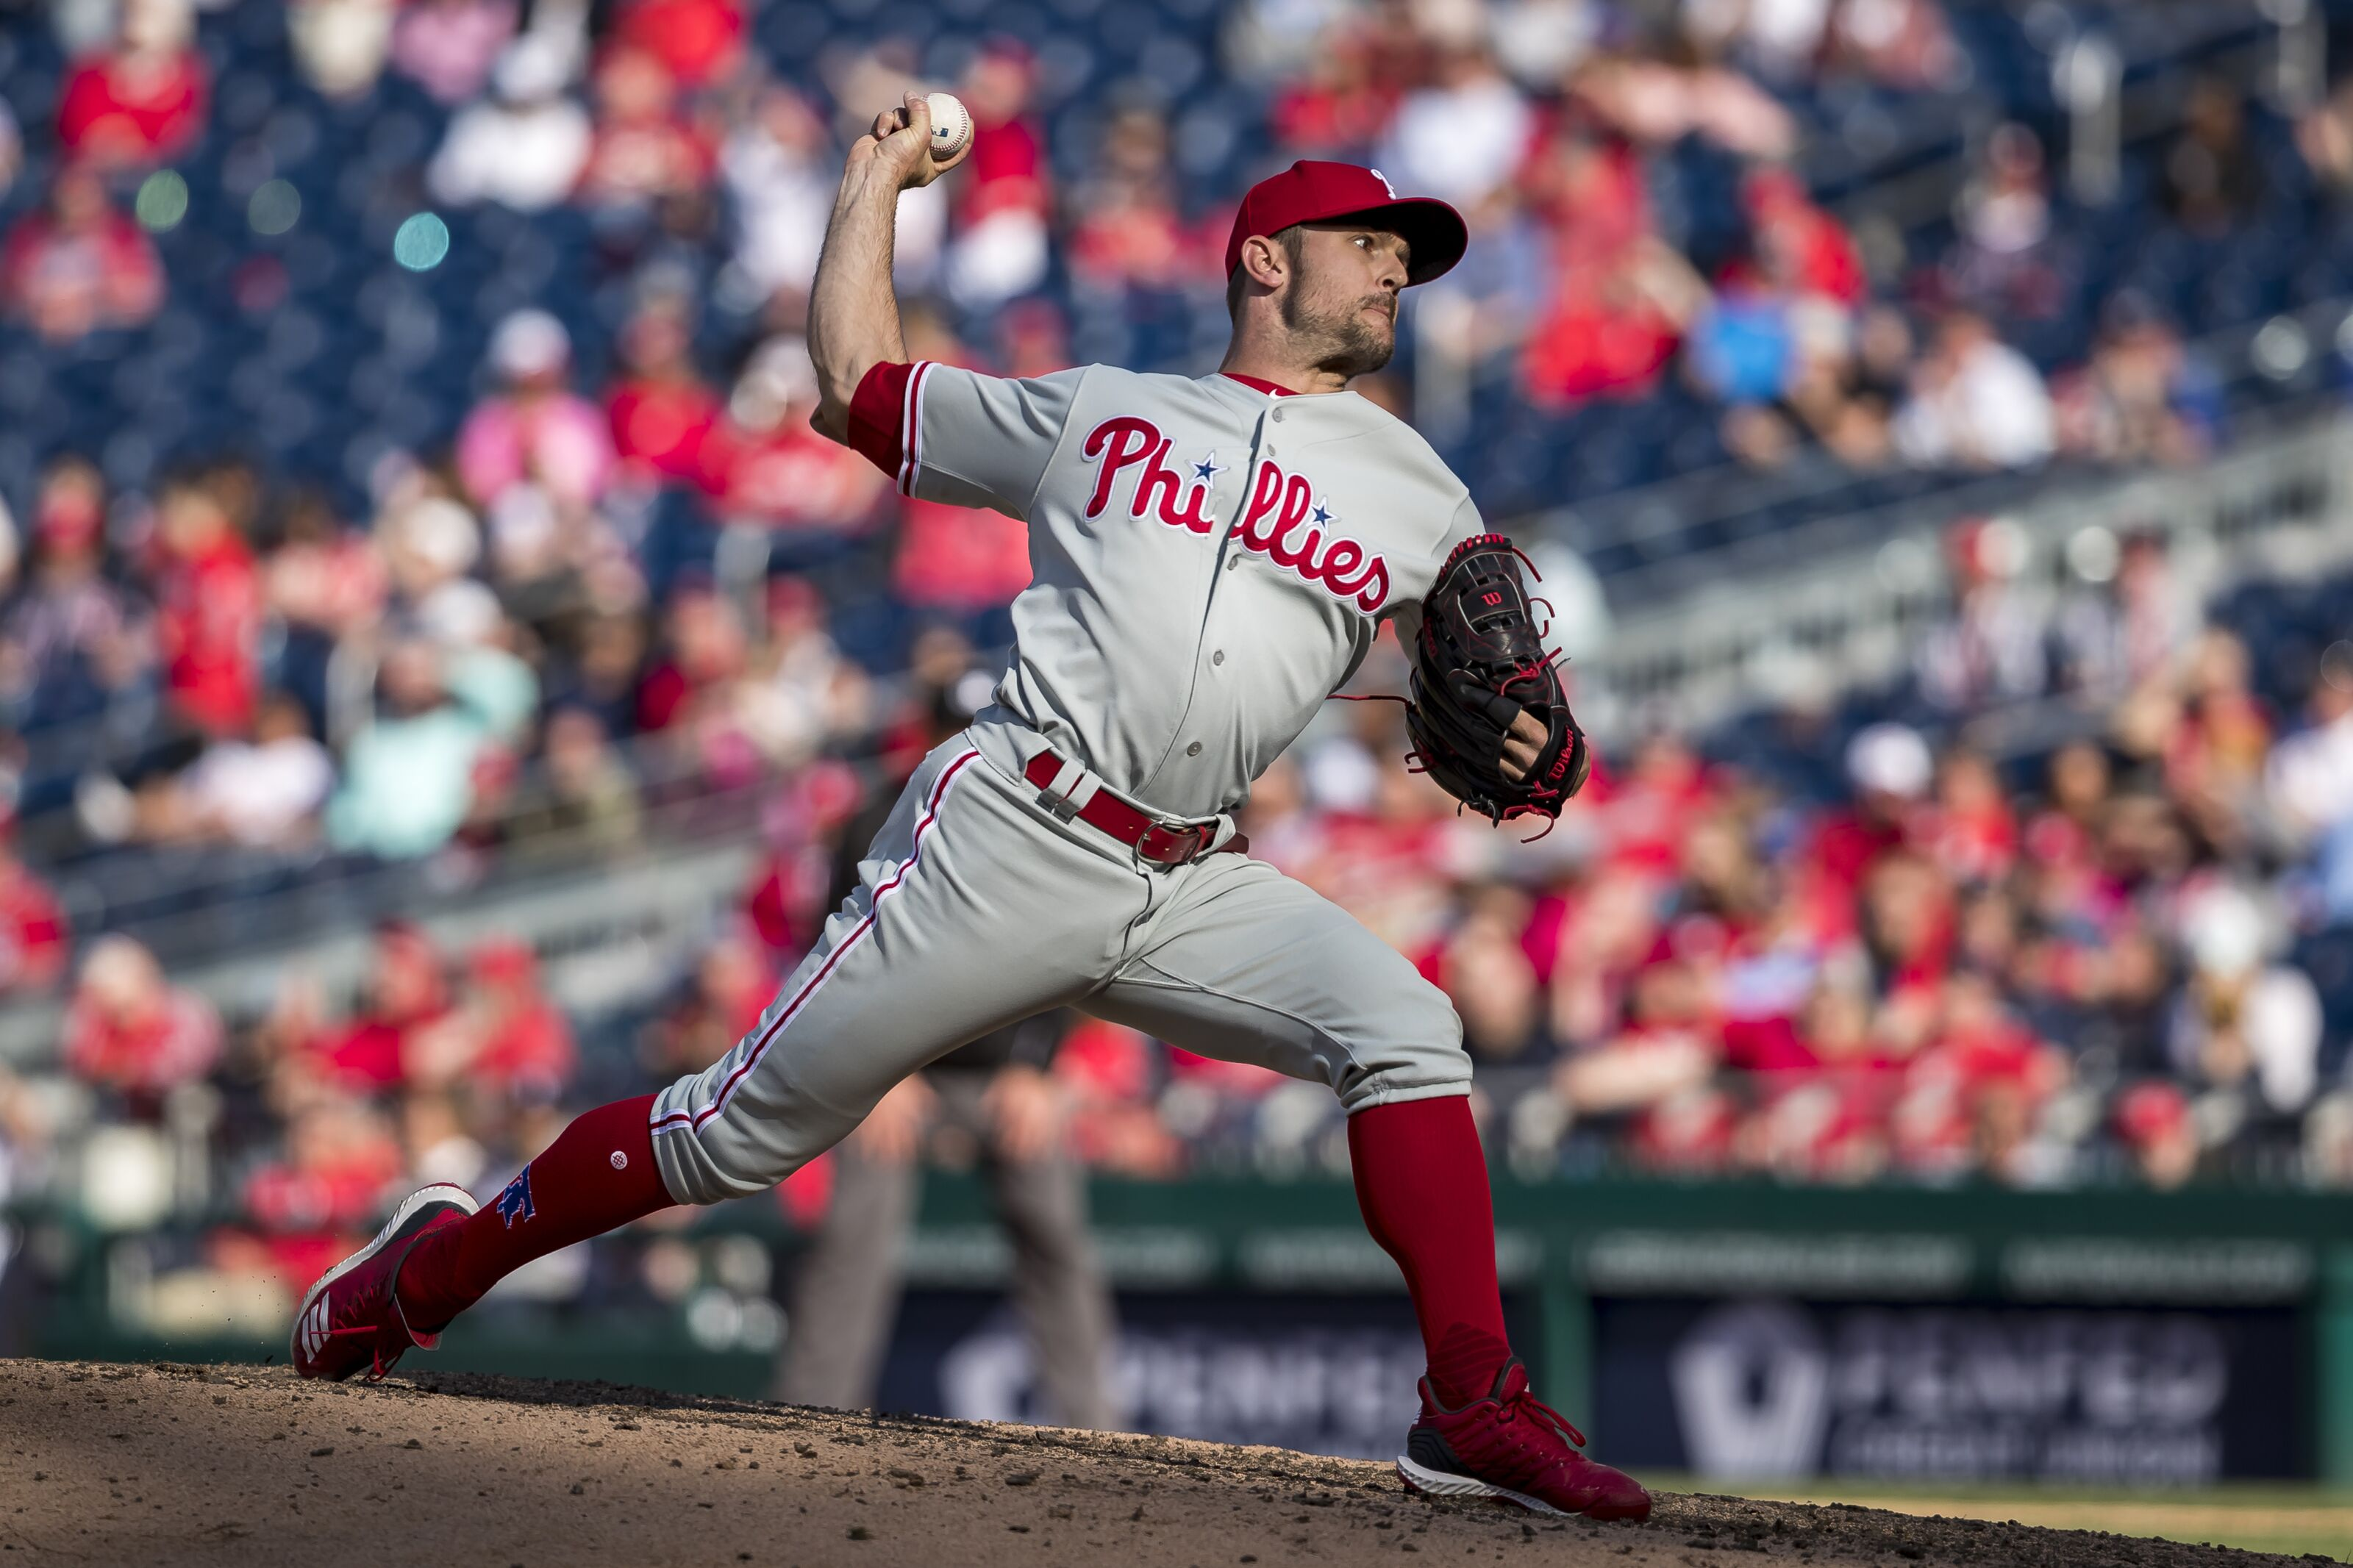 Phillies misuse of David Robertson playing into his struggles?